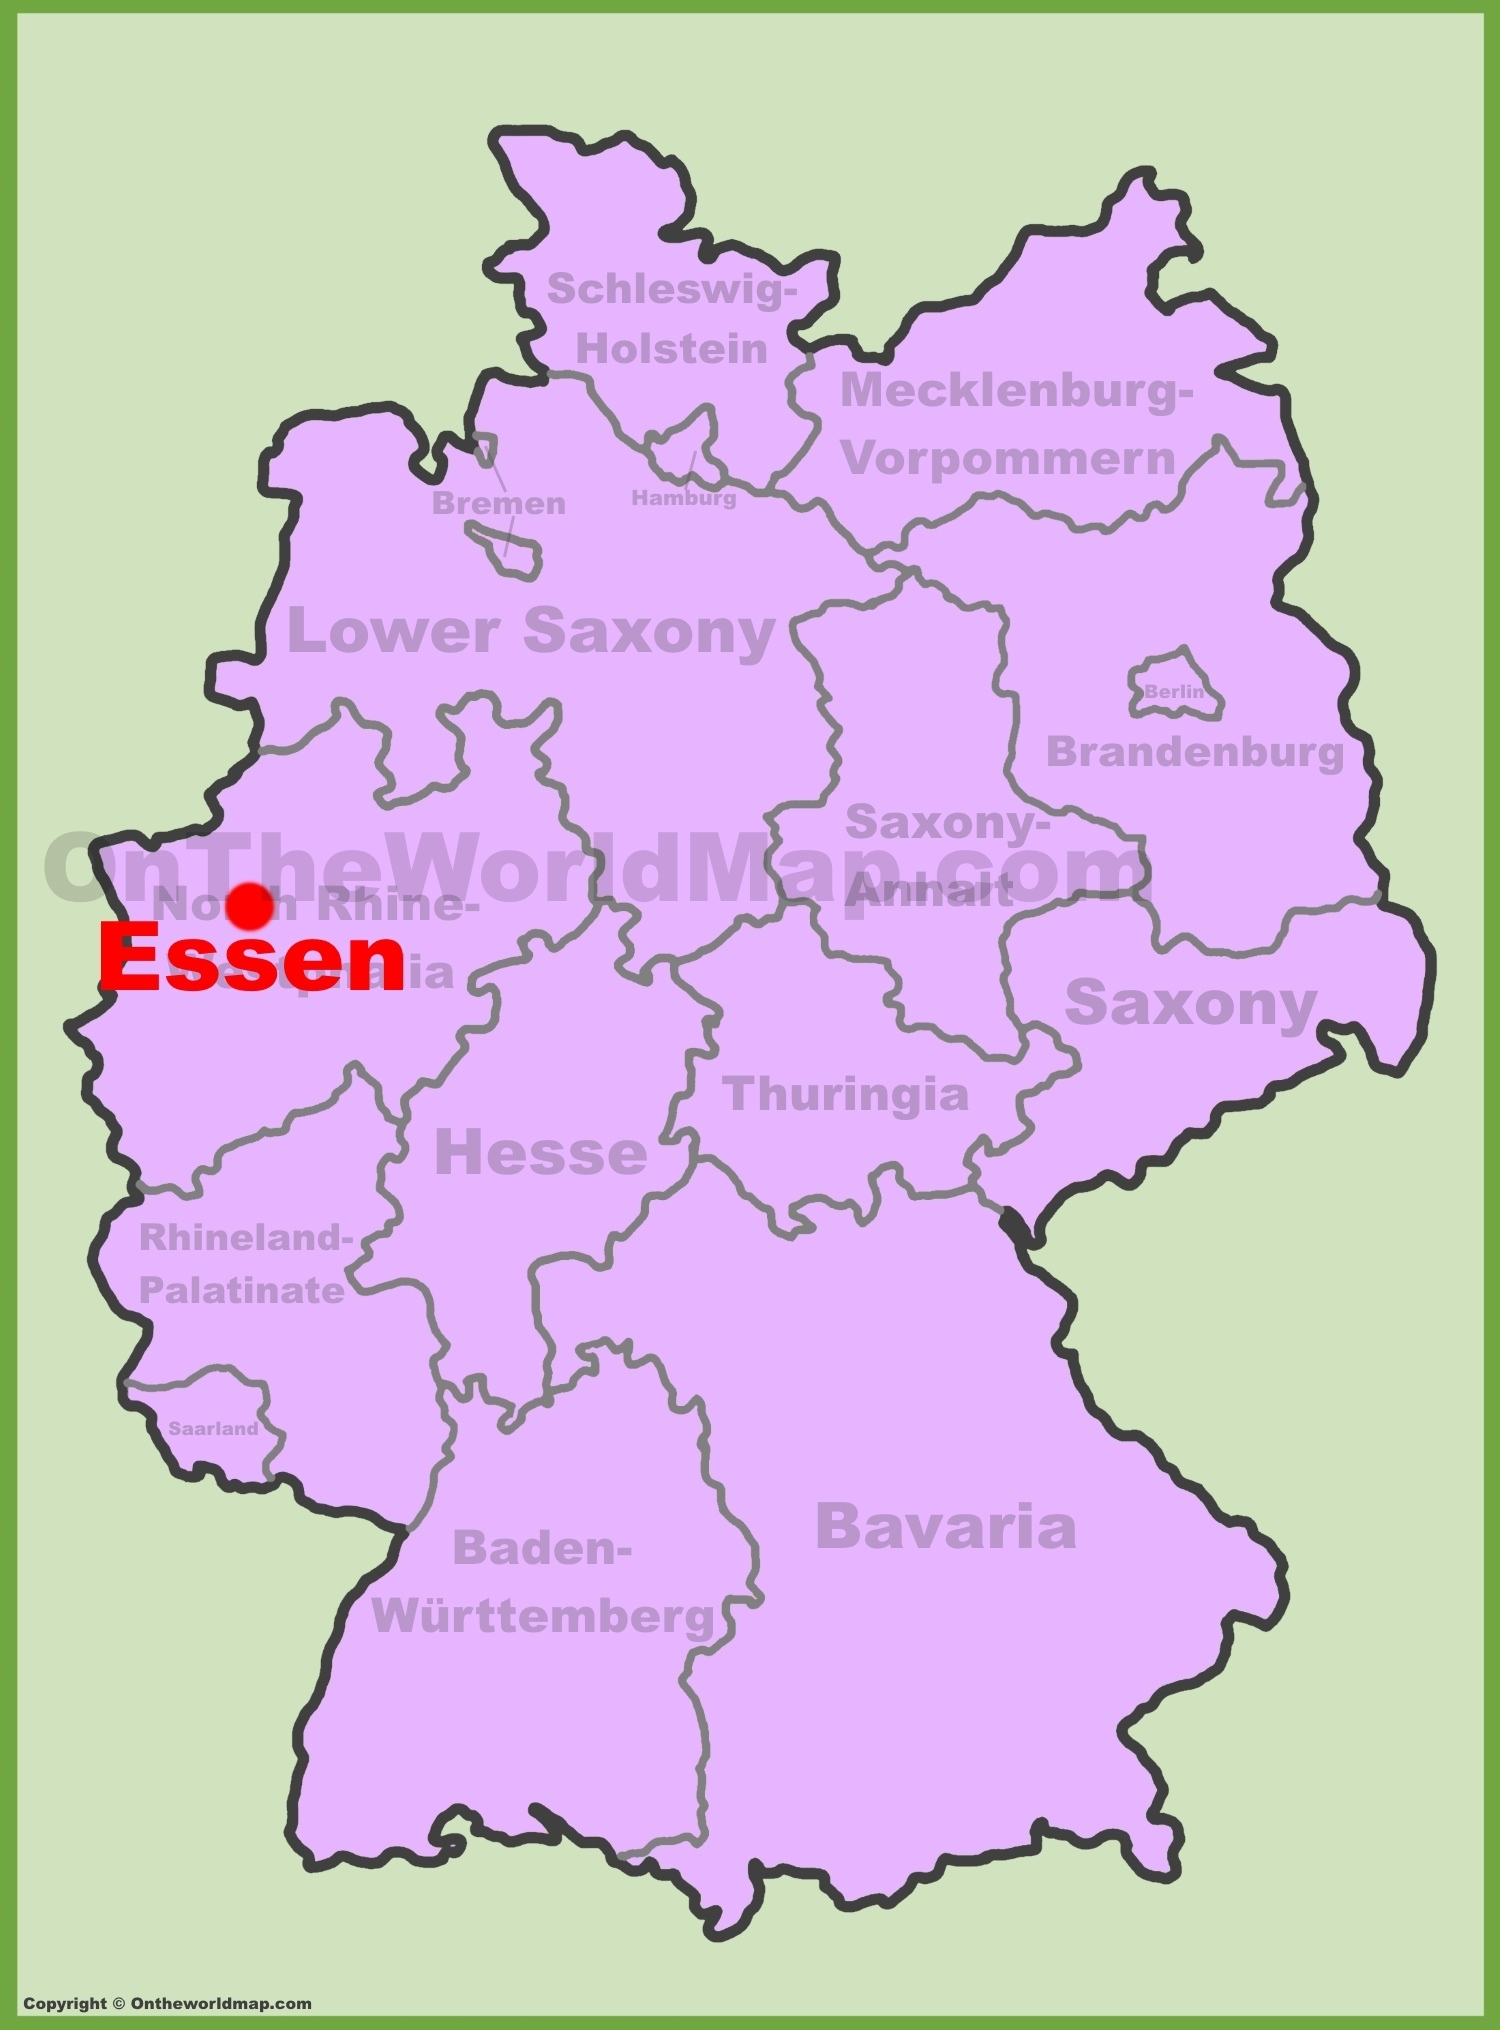 Essen Location On The Germany Map in Essen Germany Map